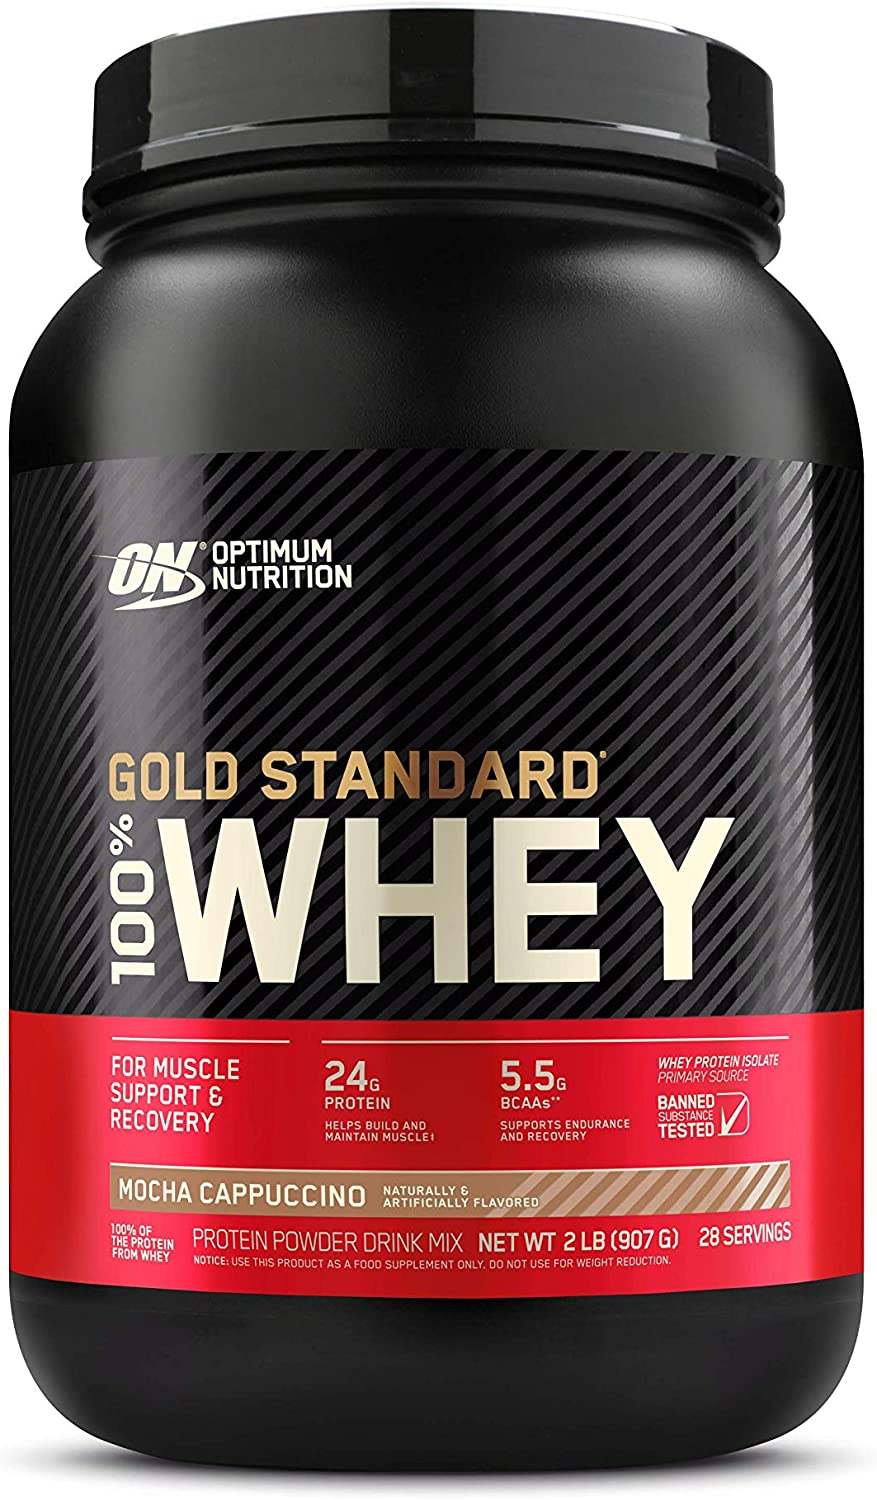 Optimum Nutrition Gold Standard 100% Whey Protein Powder, Mocha Cappuccino, 2 Pound (Packaging May Vary): Health & Personal Care